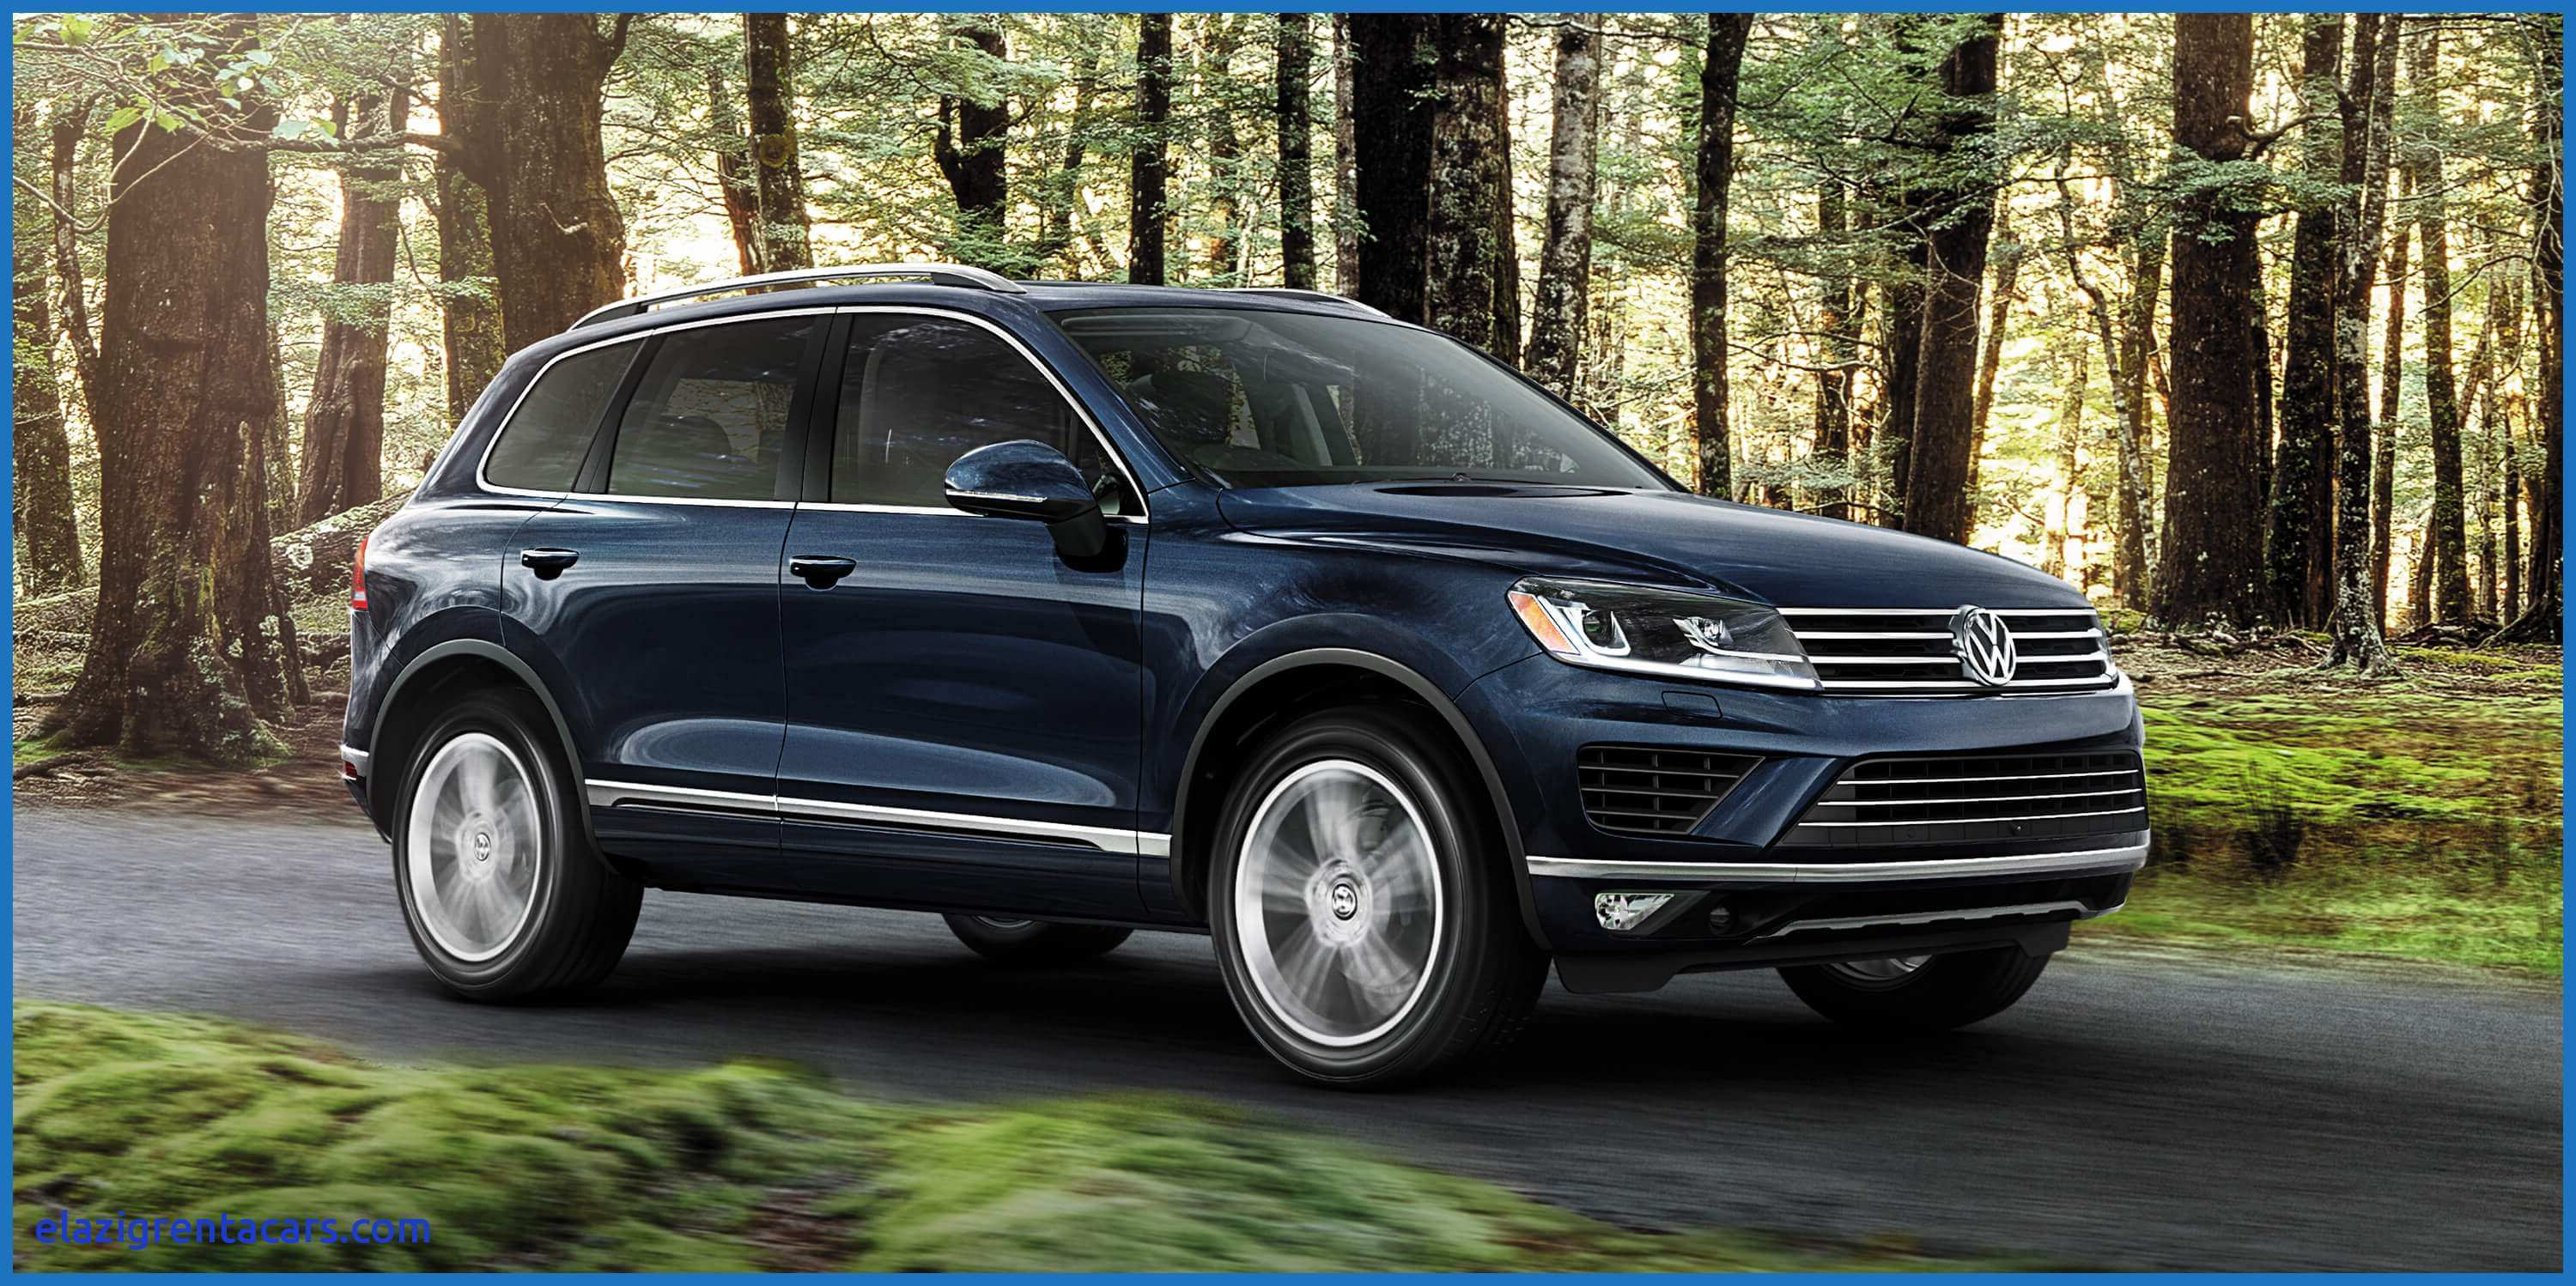 88 New 2020 Volkswagen Touareg Price and Review for 2020 Volkswagen Touareg